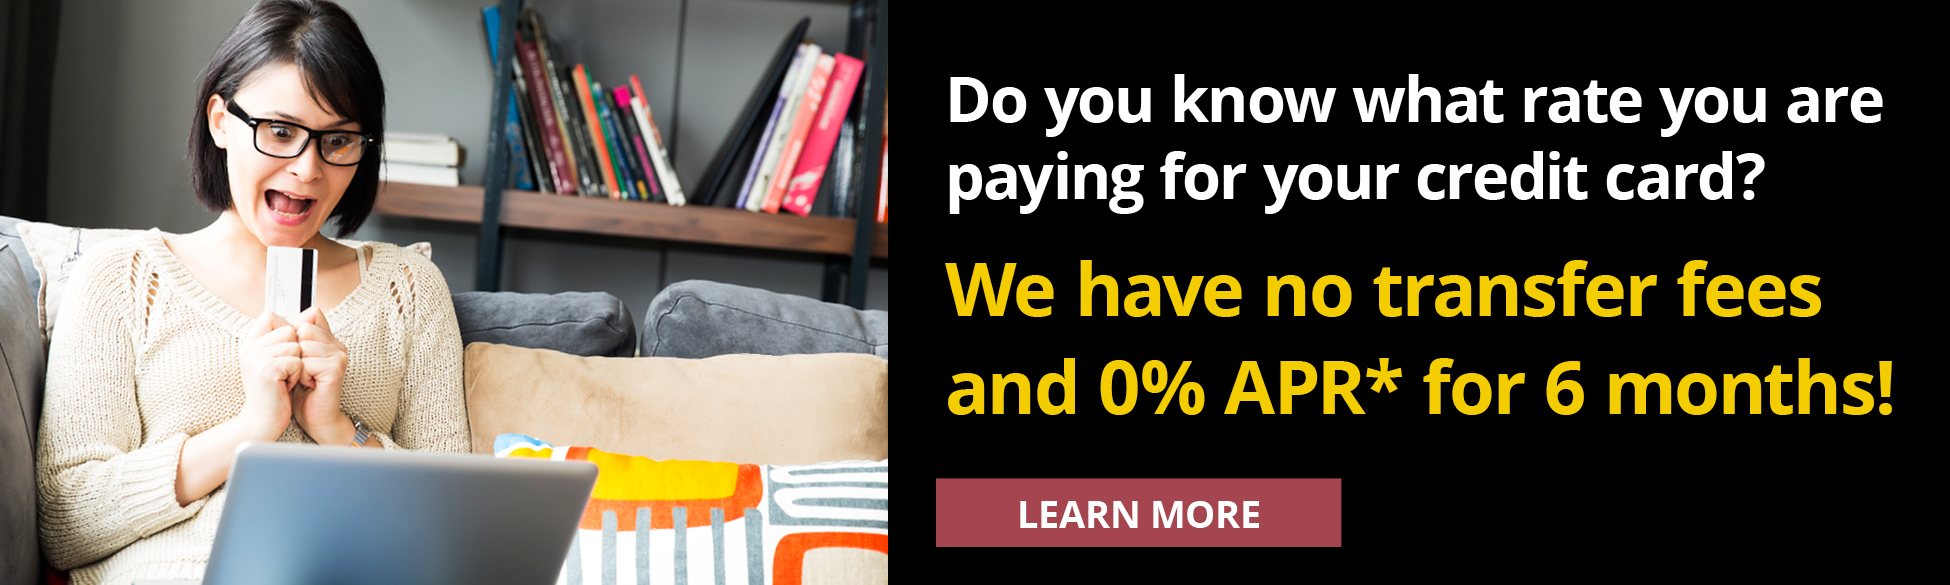 Do you know what rate you are paying for your credit card? We have no transfer fees and 0% APR* for 6 months! Learn More